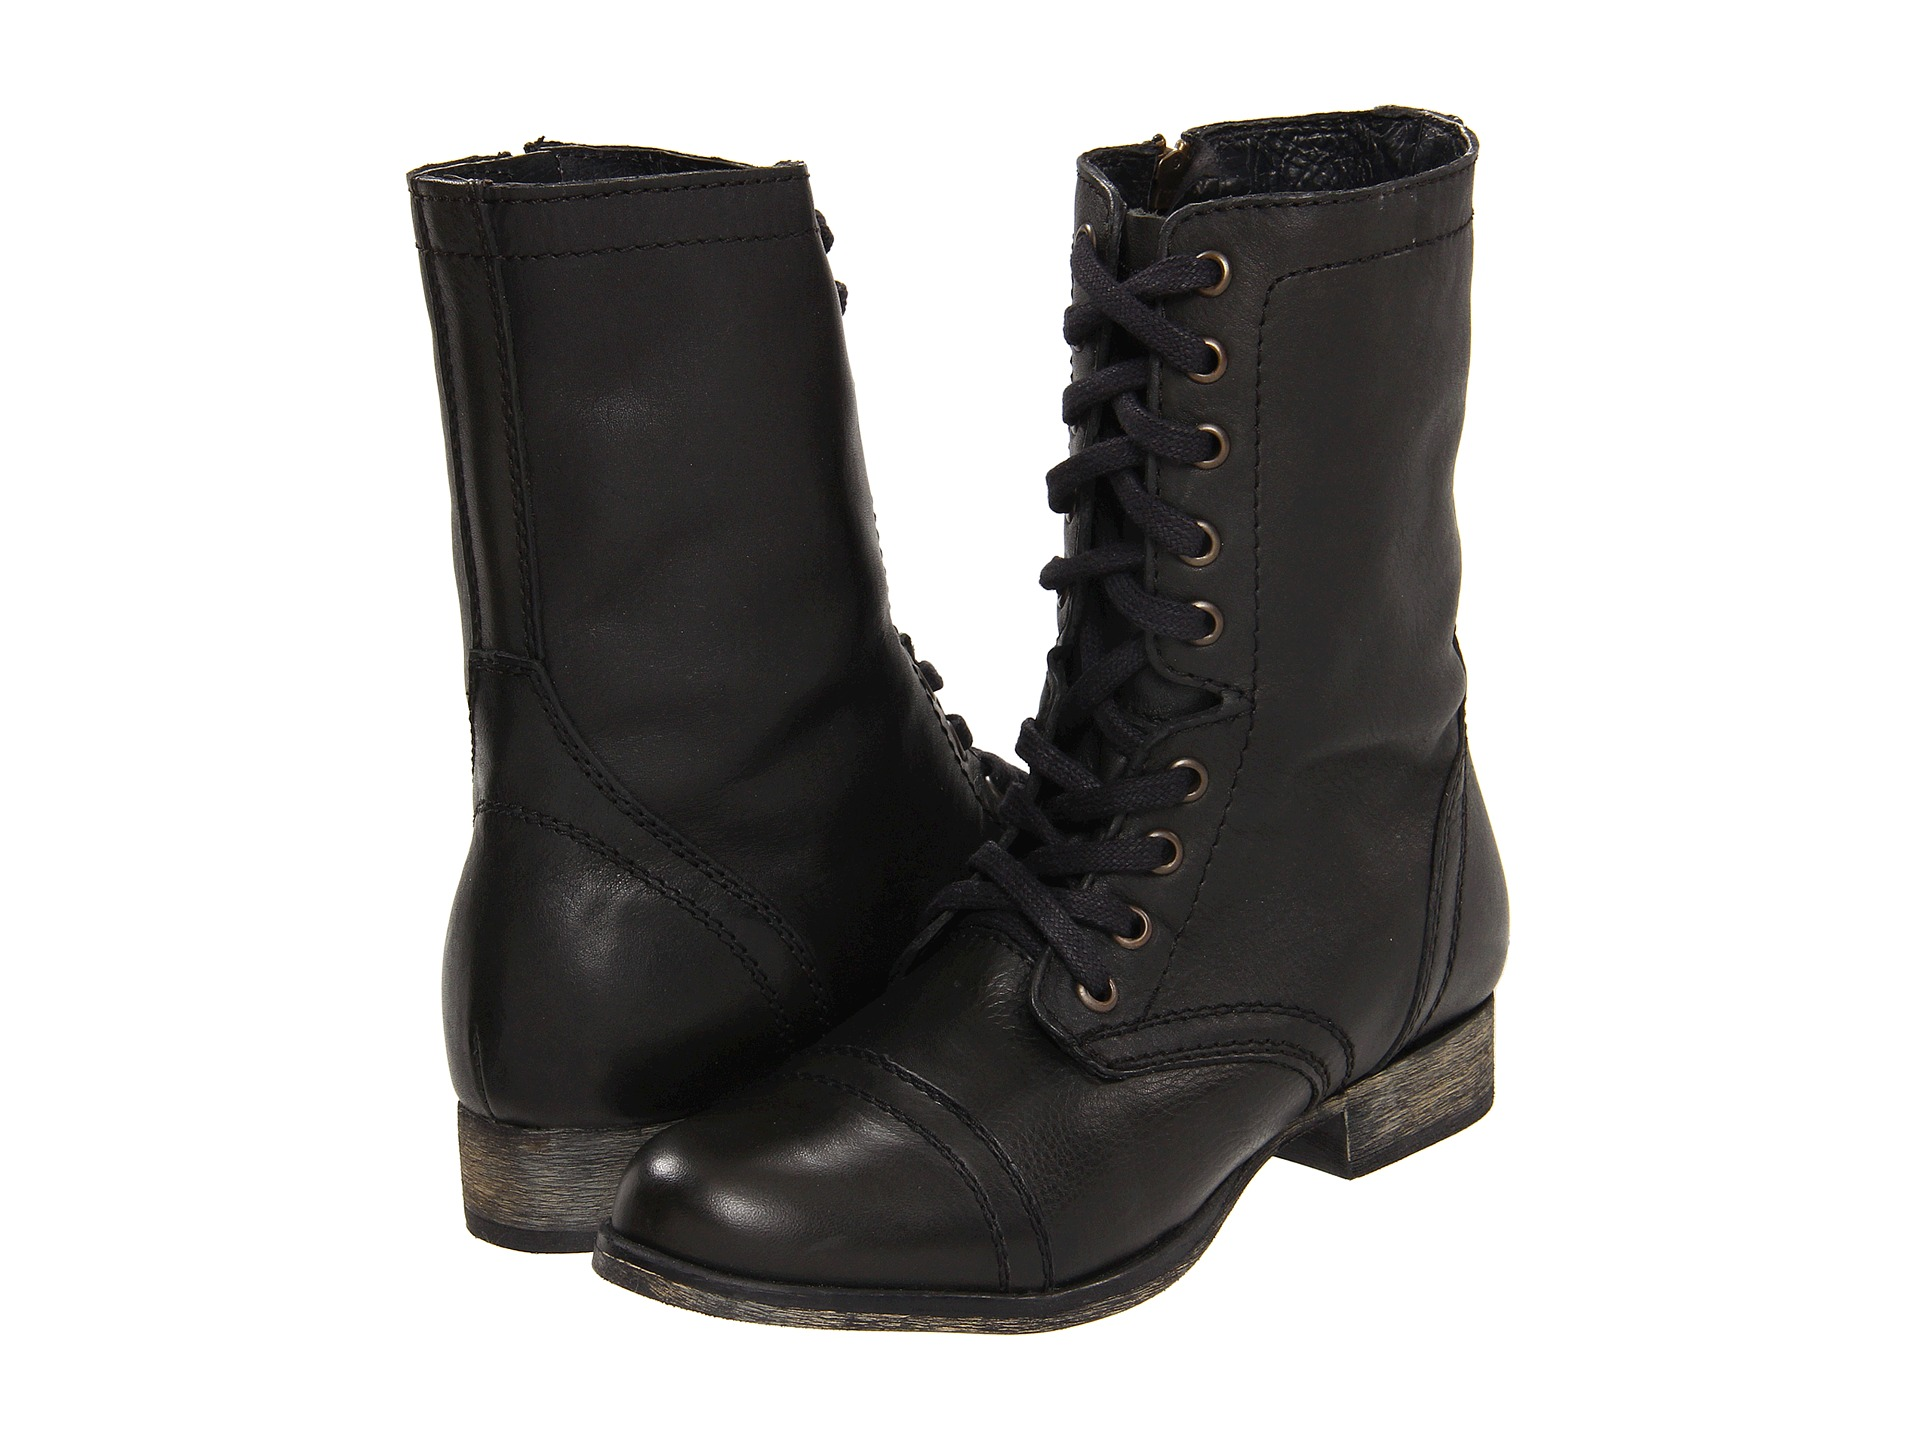 steve madden troopa black lace up military boots 8 new ebay. Black Bedroom Furniture Sets. Home Design Ideas